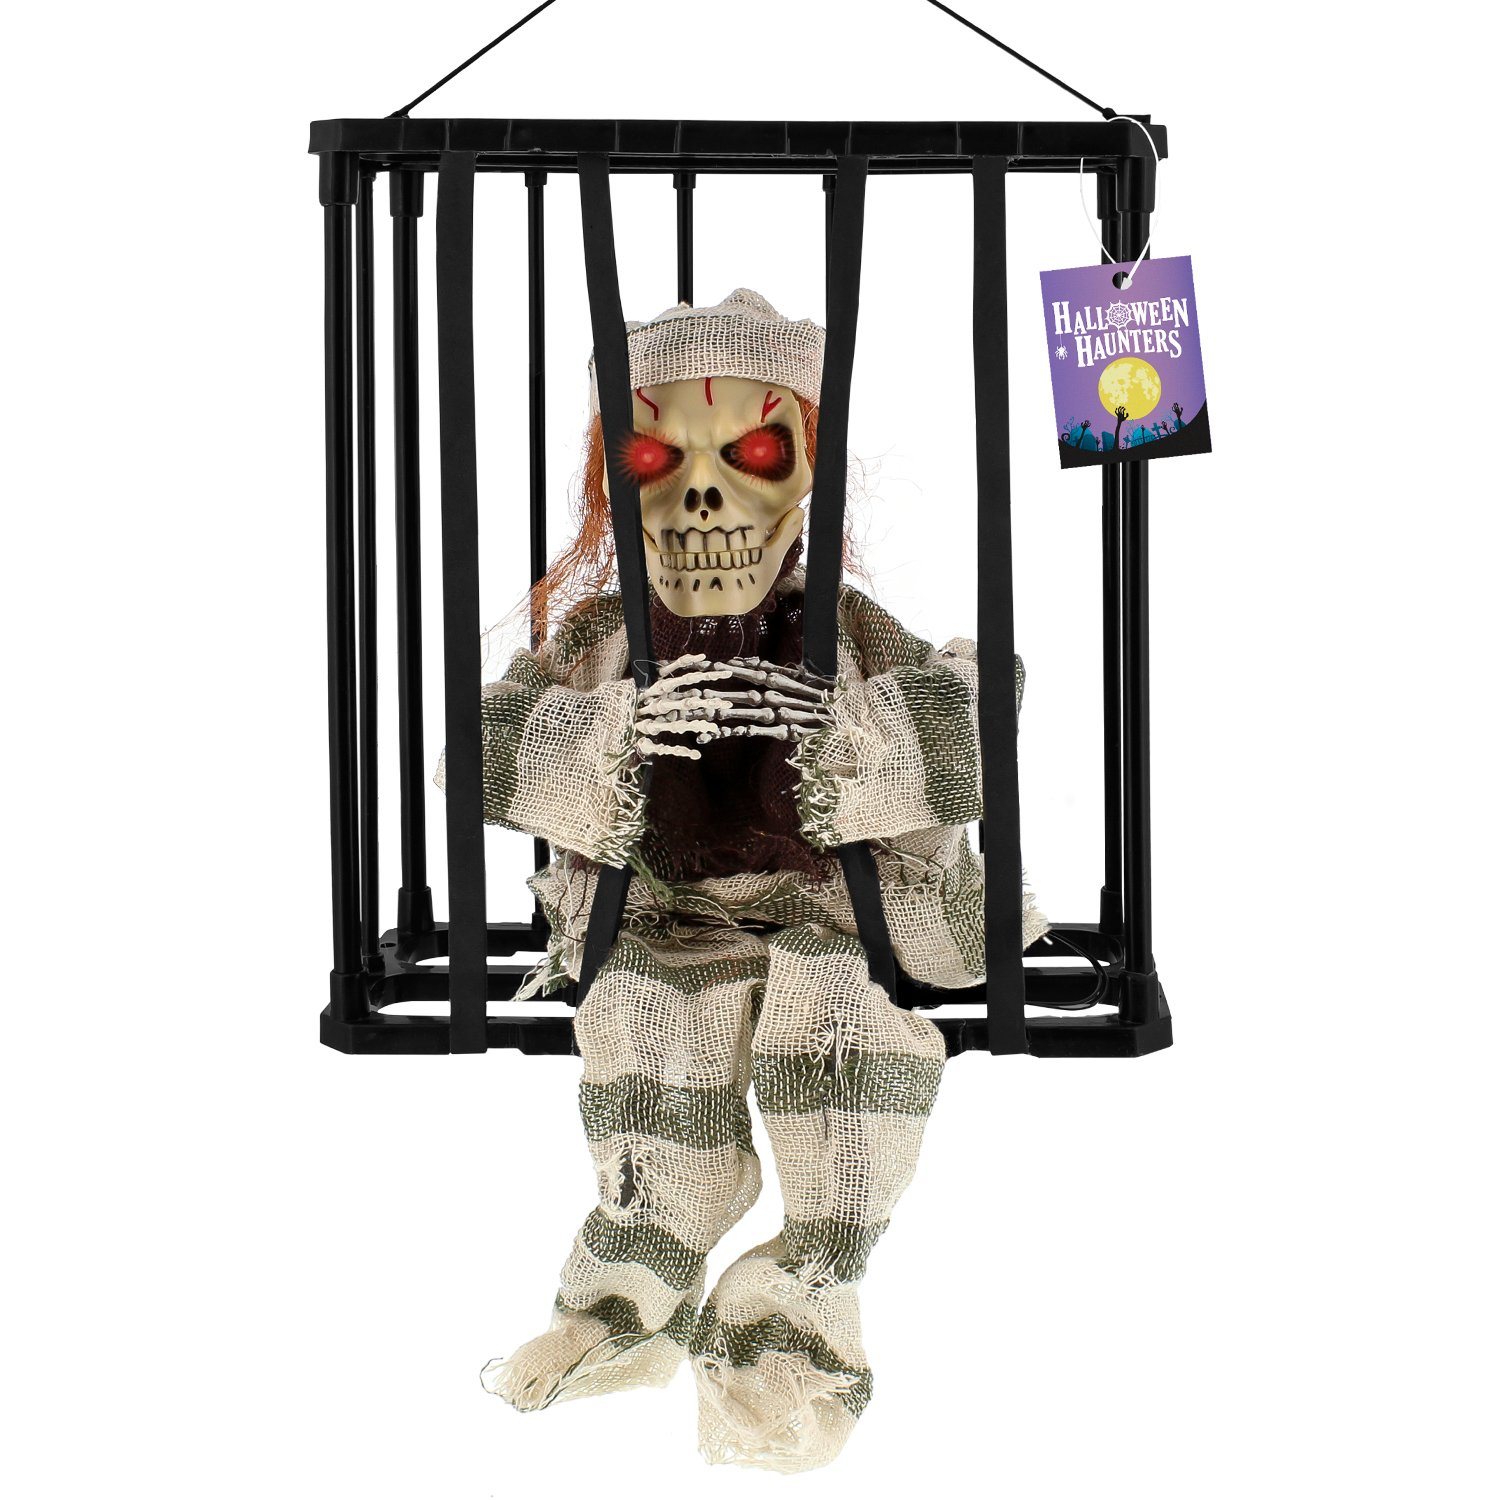 Halloween Haunters Animated Hanging Caged Skeleton Ghost Prisoner Speaking Moving Escaping Locked Prison Jail Prop Decoration - Screams Help Me as Head Lurches Forward Arms Move - Spooky Haunted House